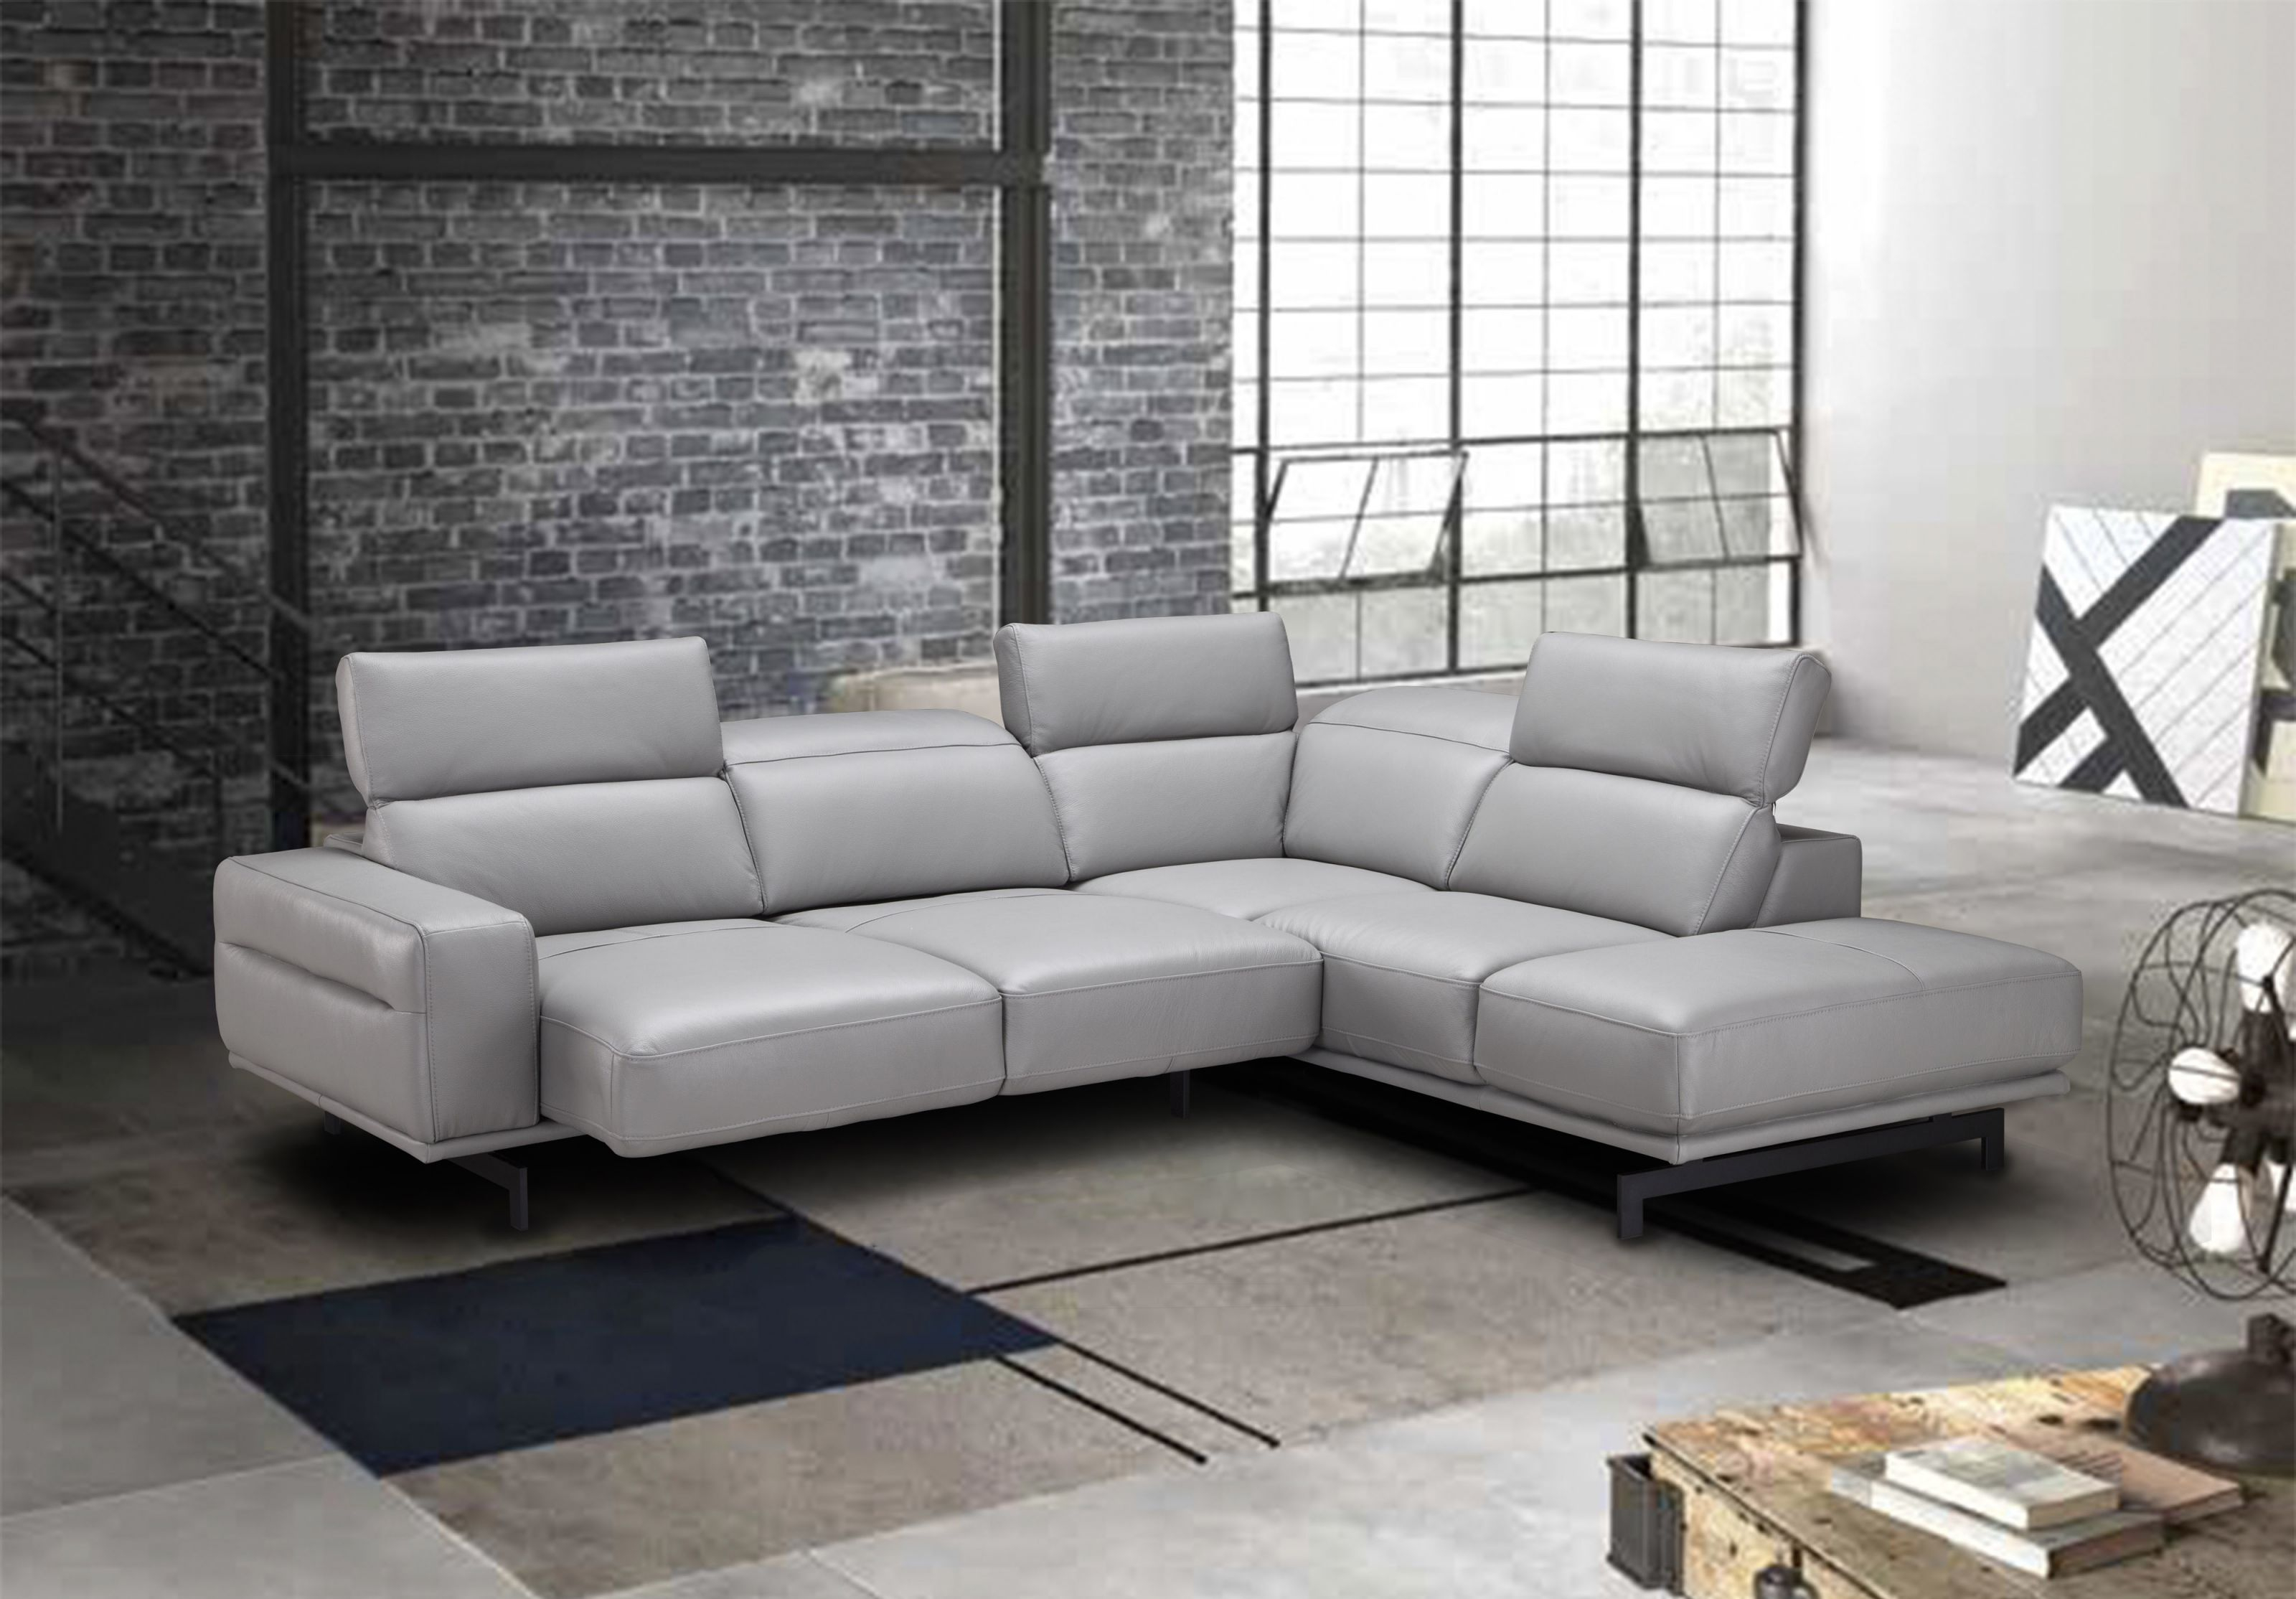 Adjustable Advanced Italian Top Grain Leather Sectional Sofa Houston with regard to Leather Sectional Sofa